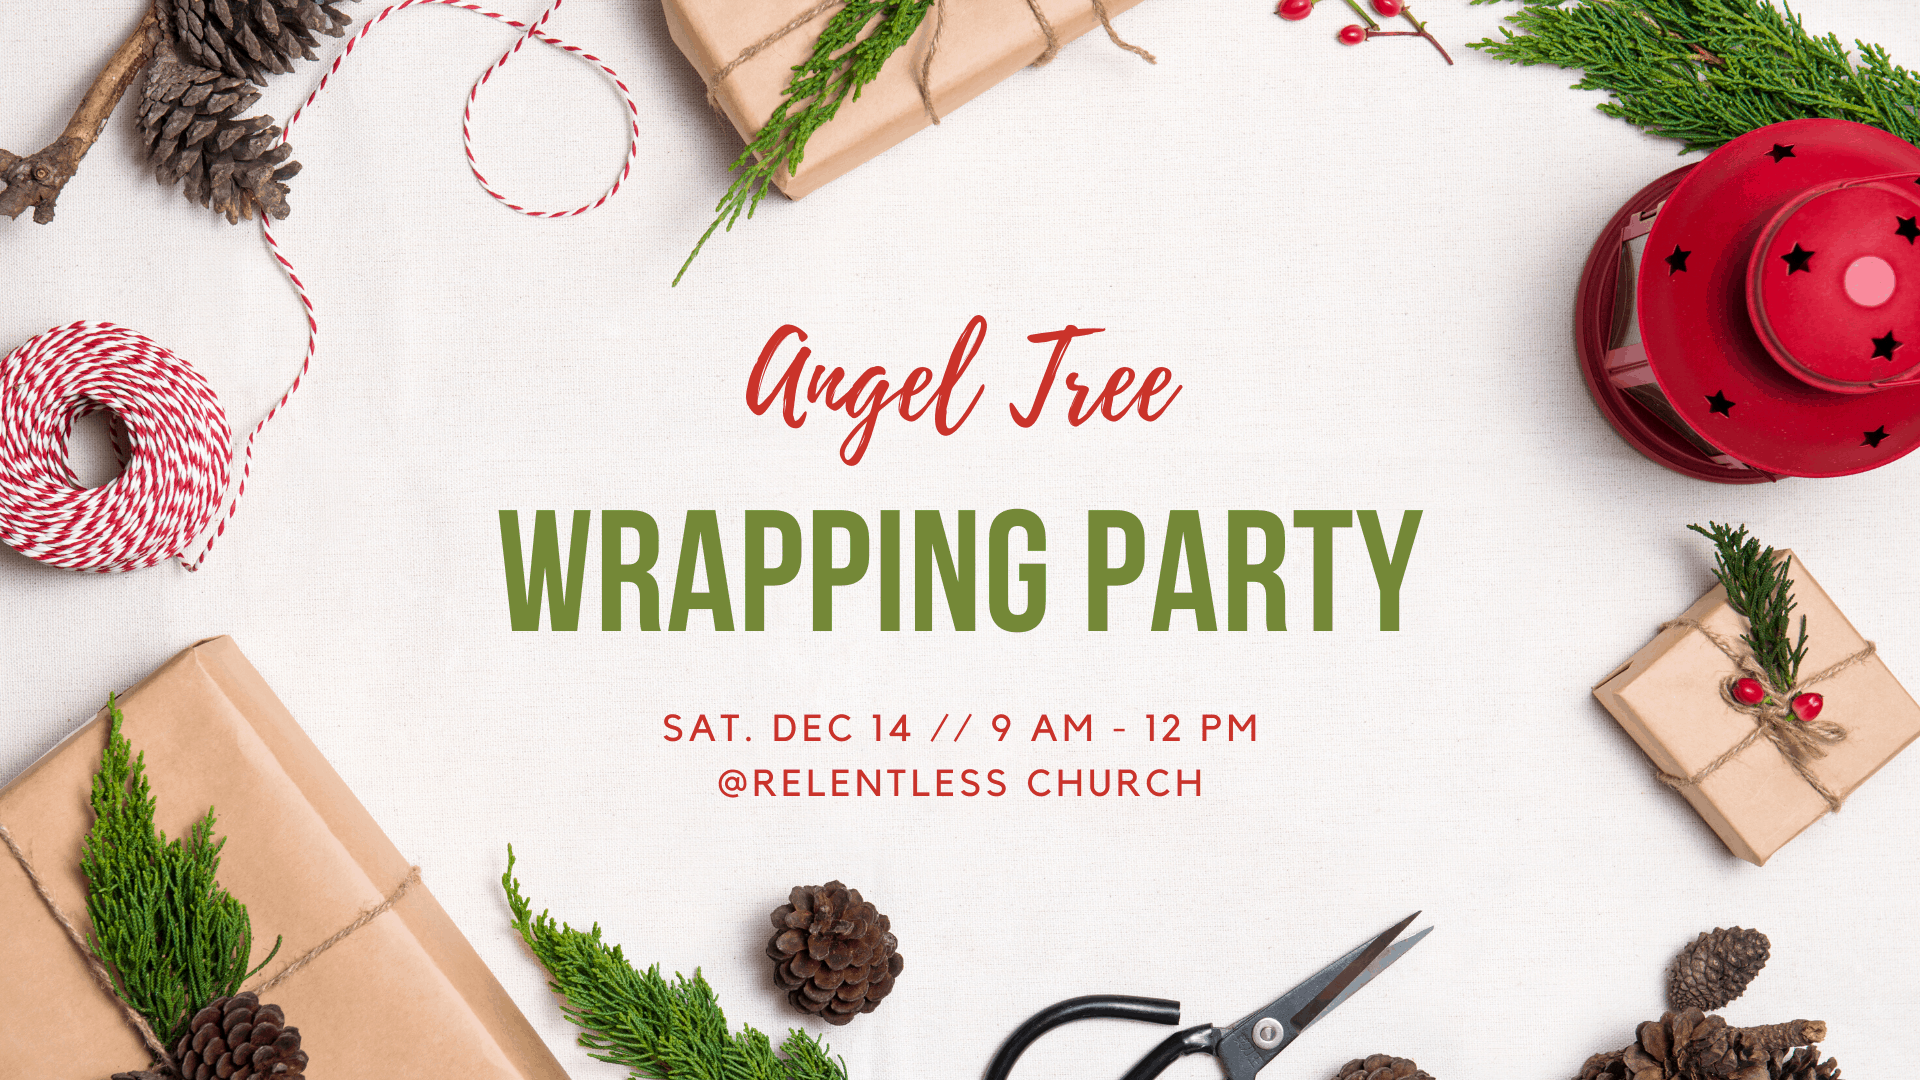 Angel Tree Wrapping Party